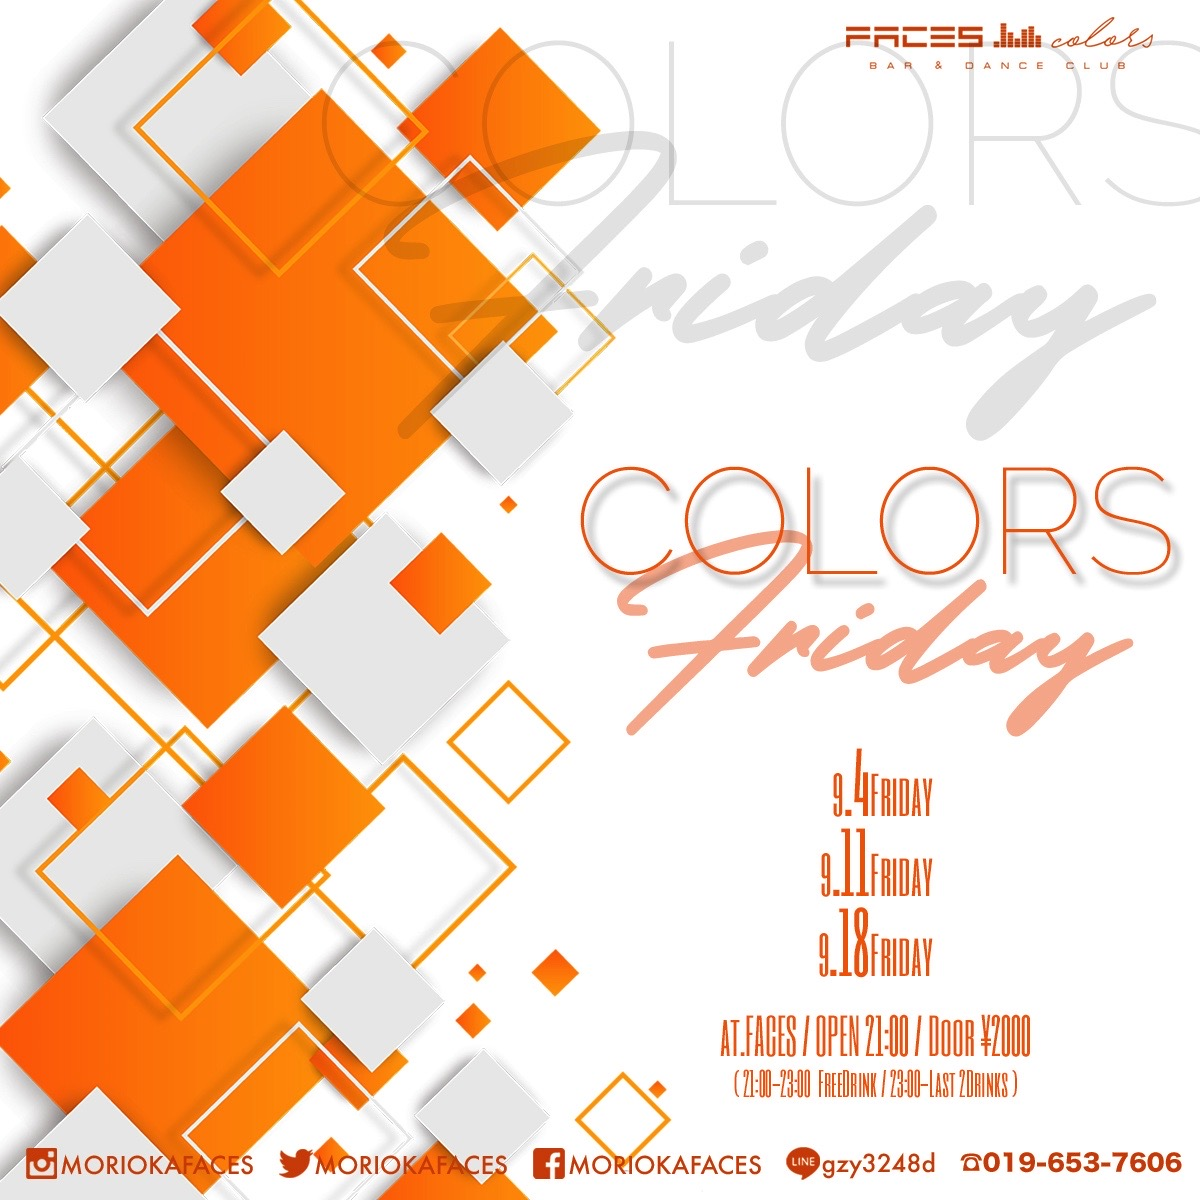 9.11(FRI) COLORS FRIDAY